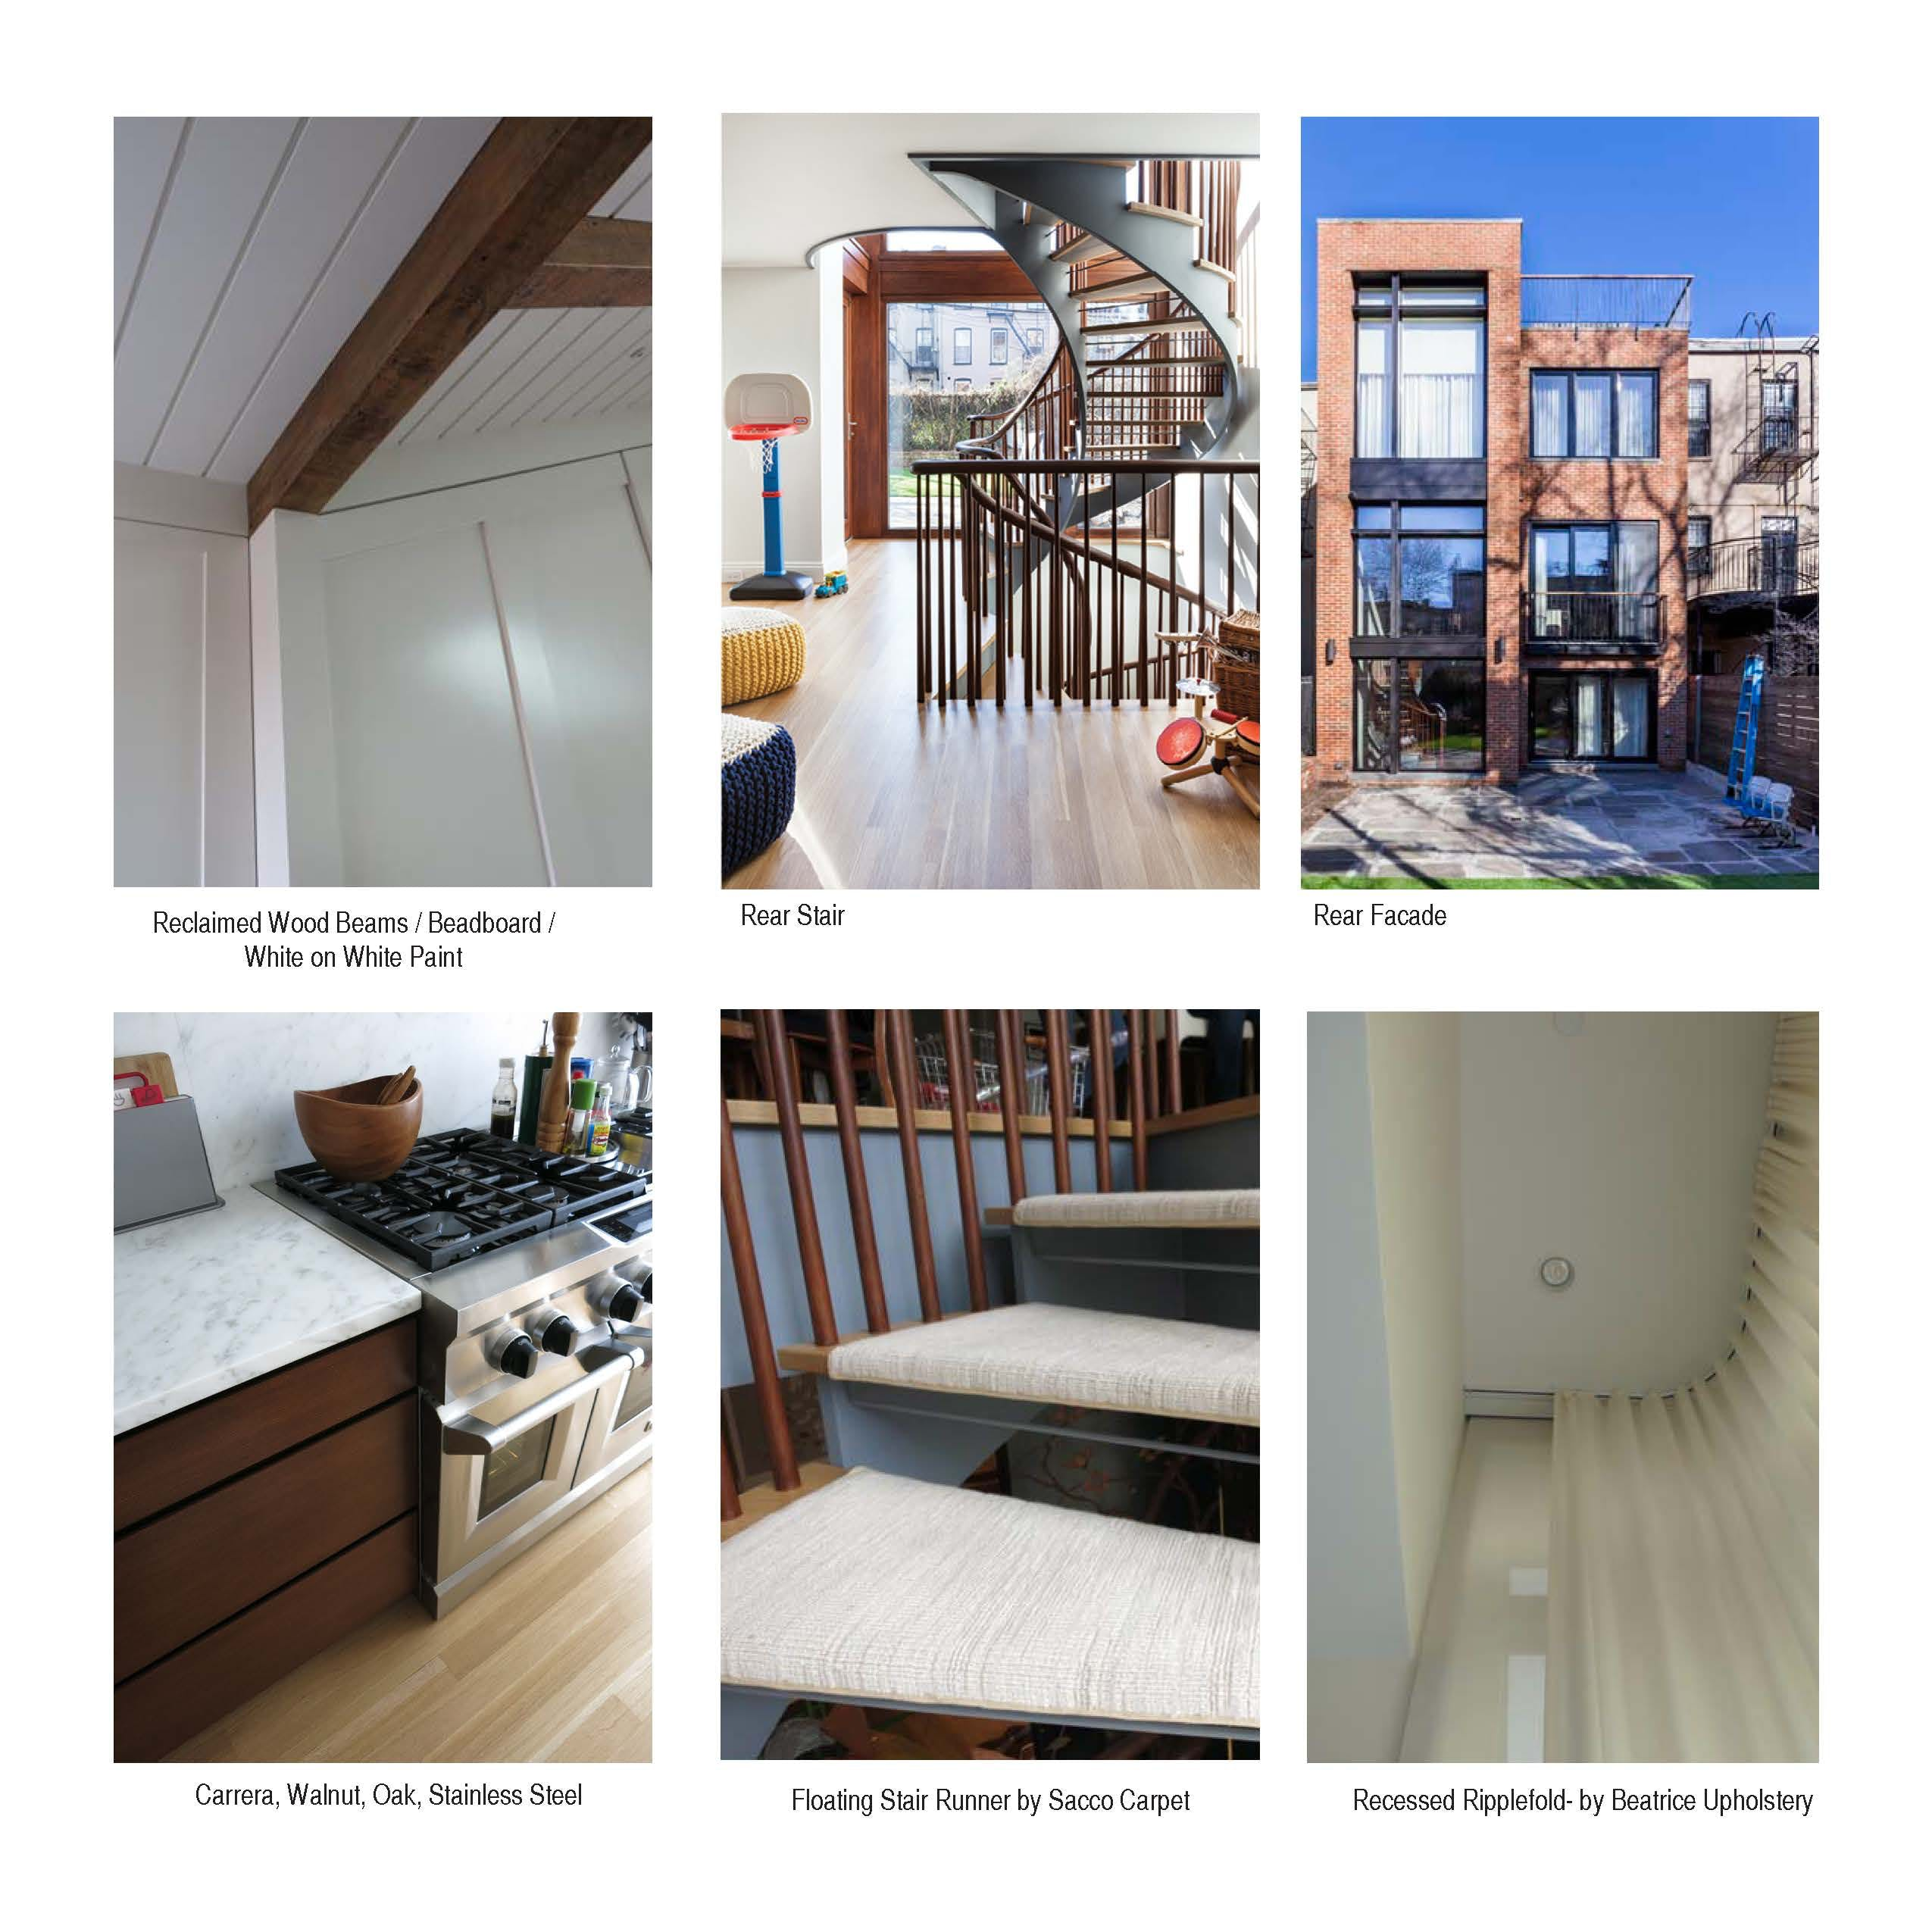 carroll gardens passive house michelle rummel archinect